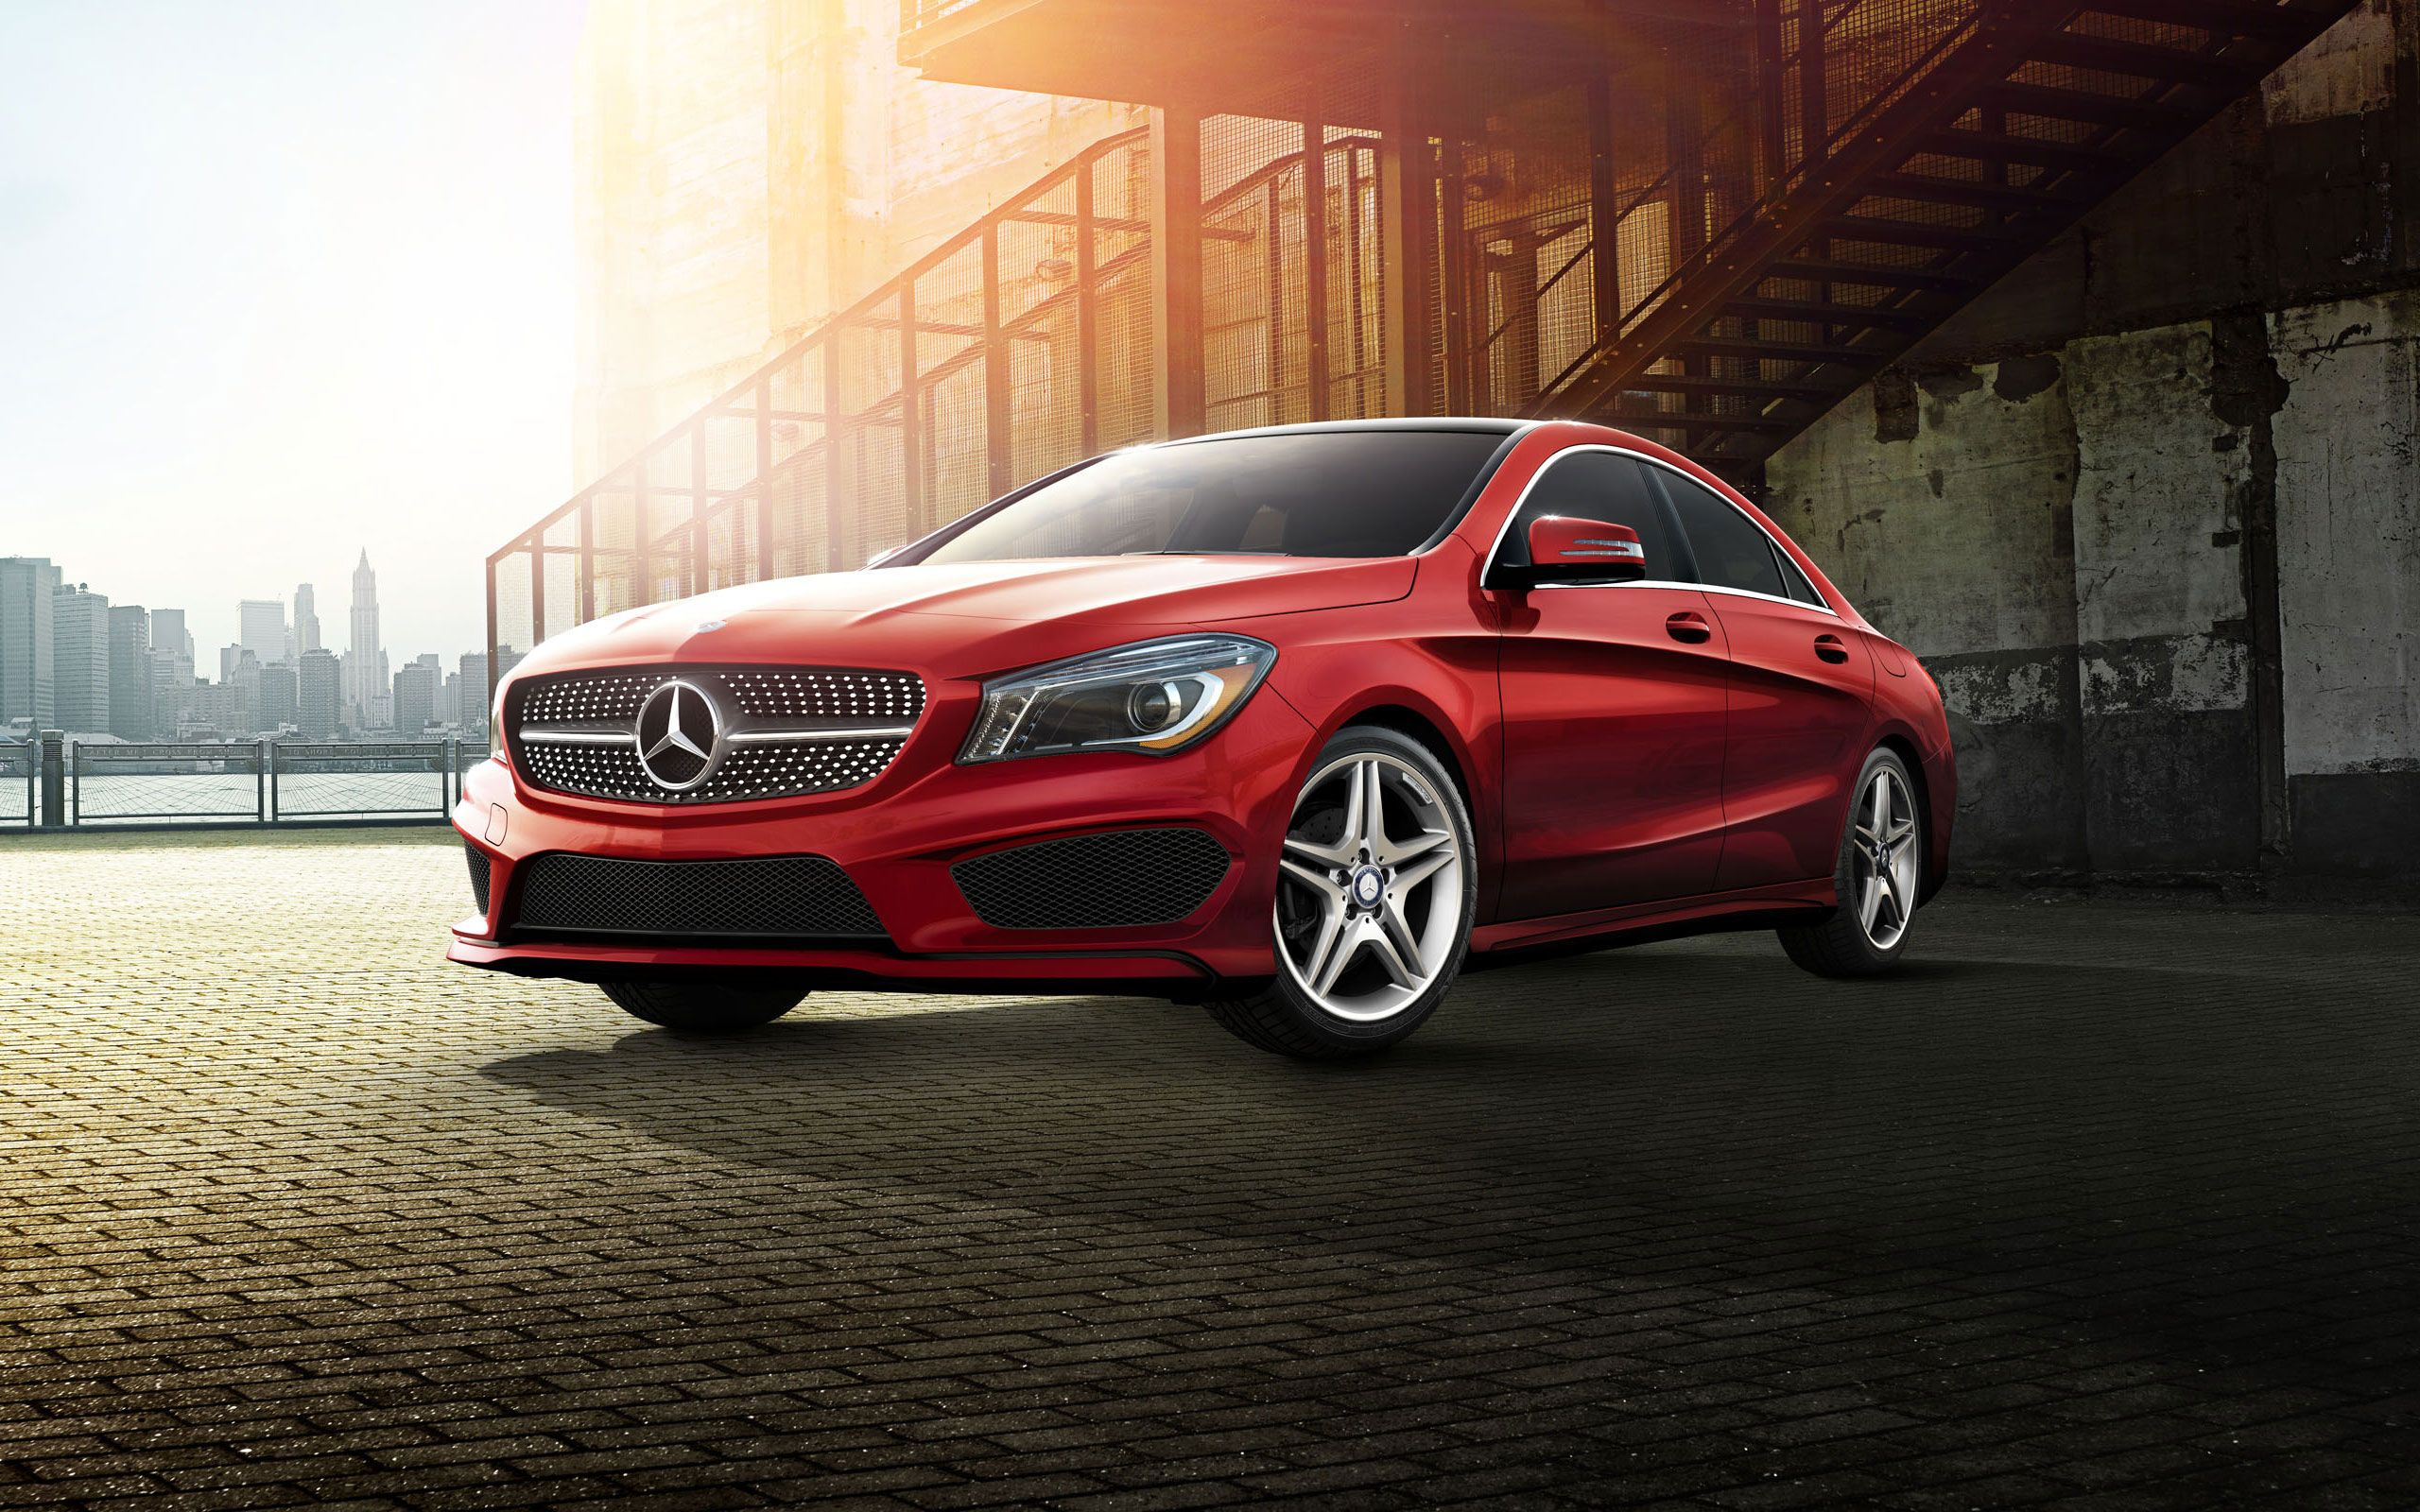 Mercedes Benz Cla250 In Designo Patagonia Red With The Available